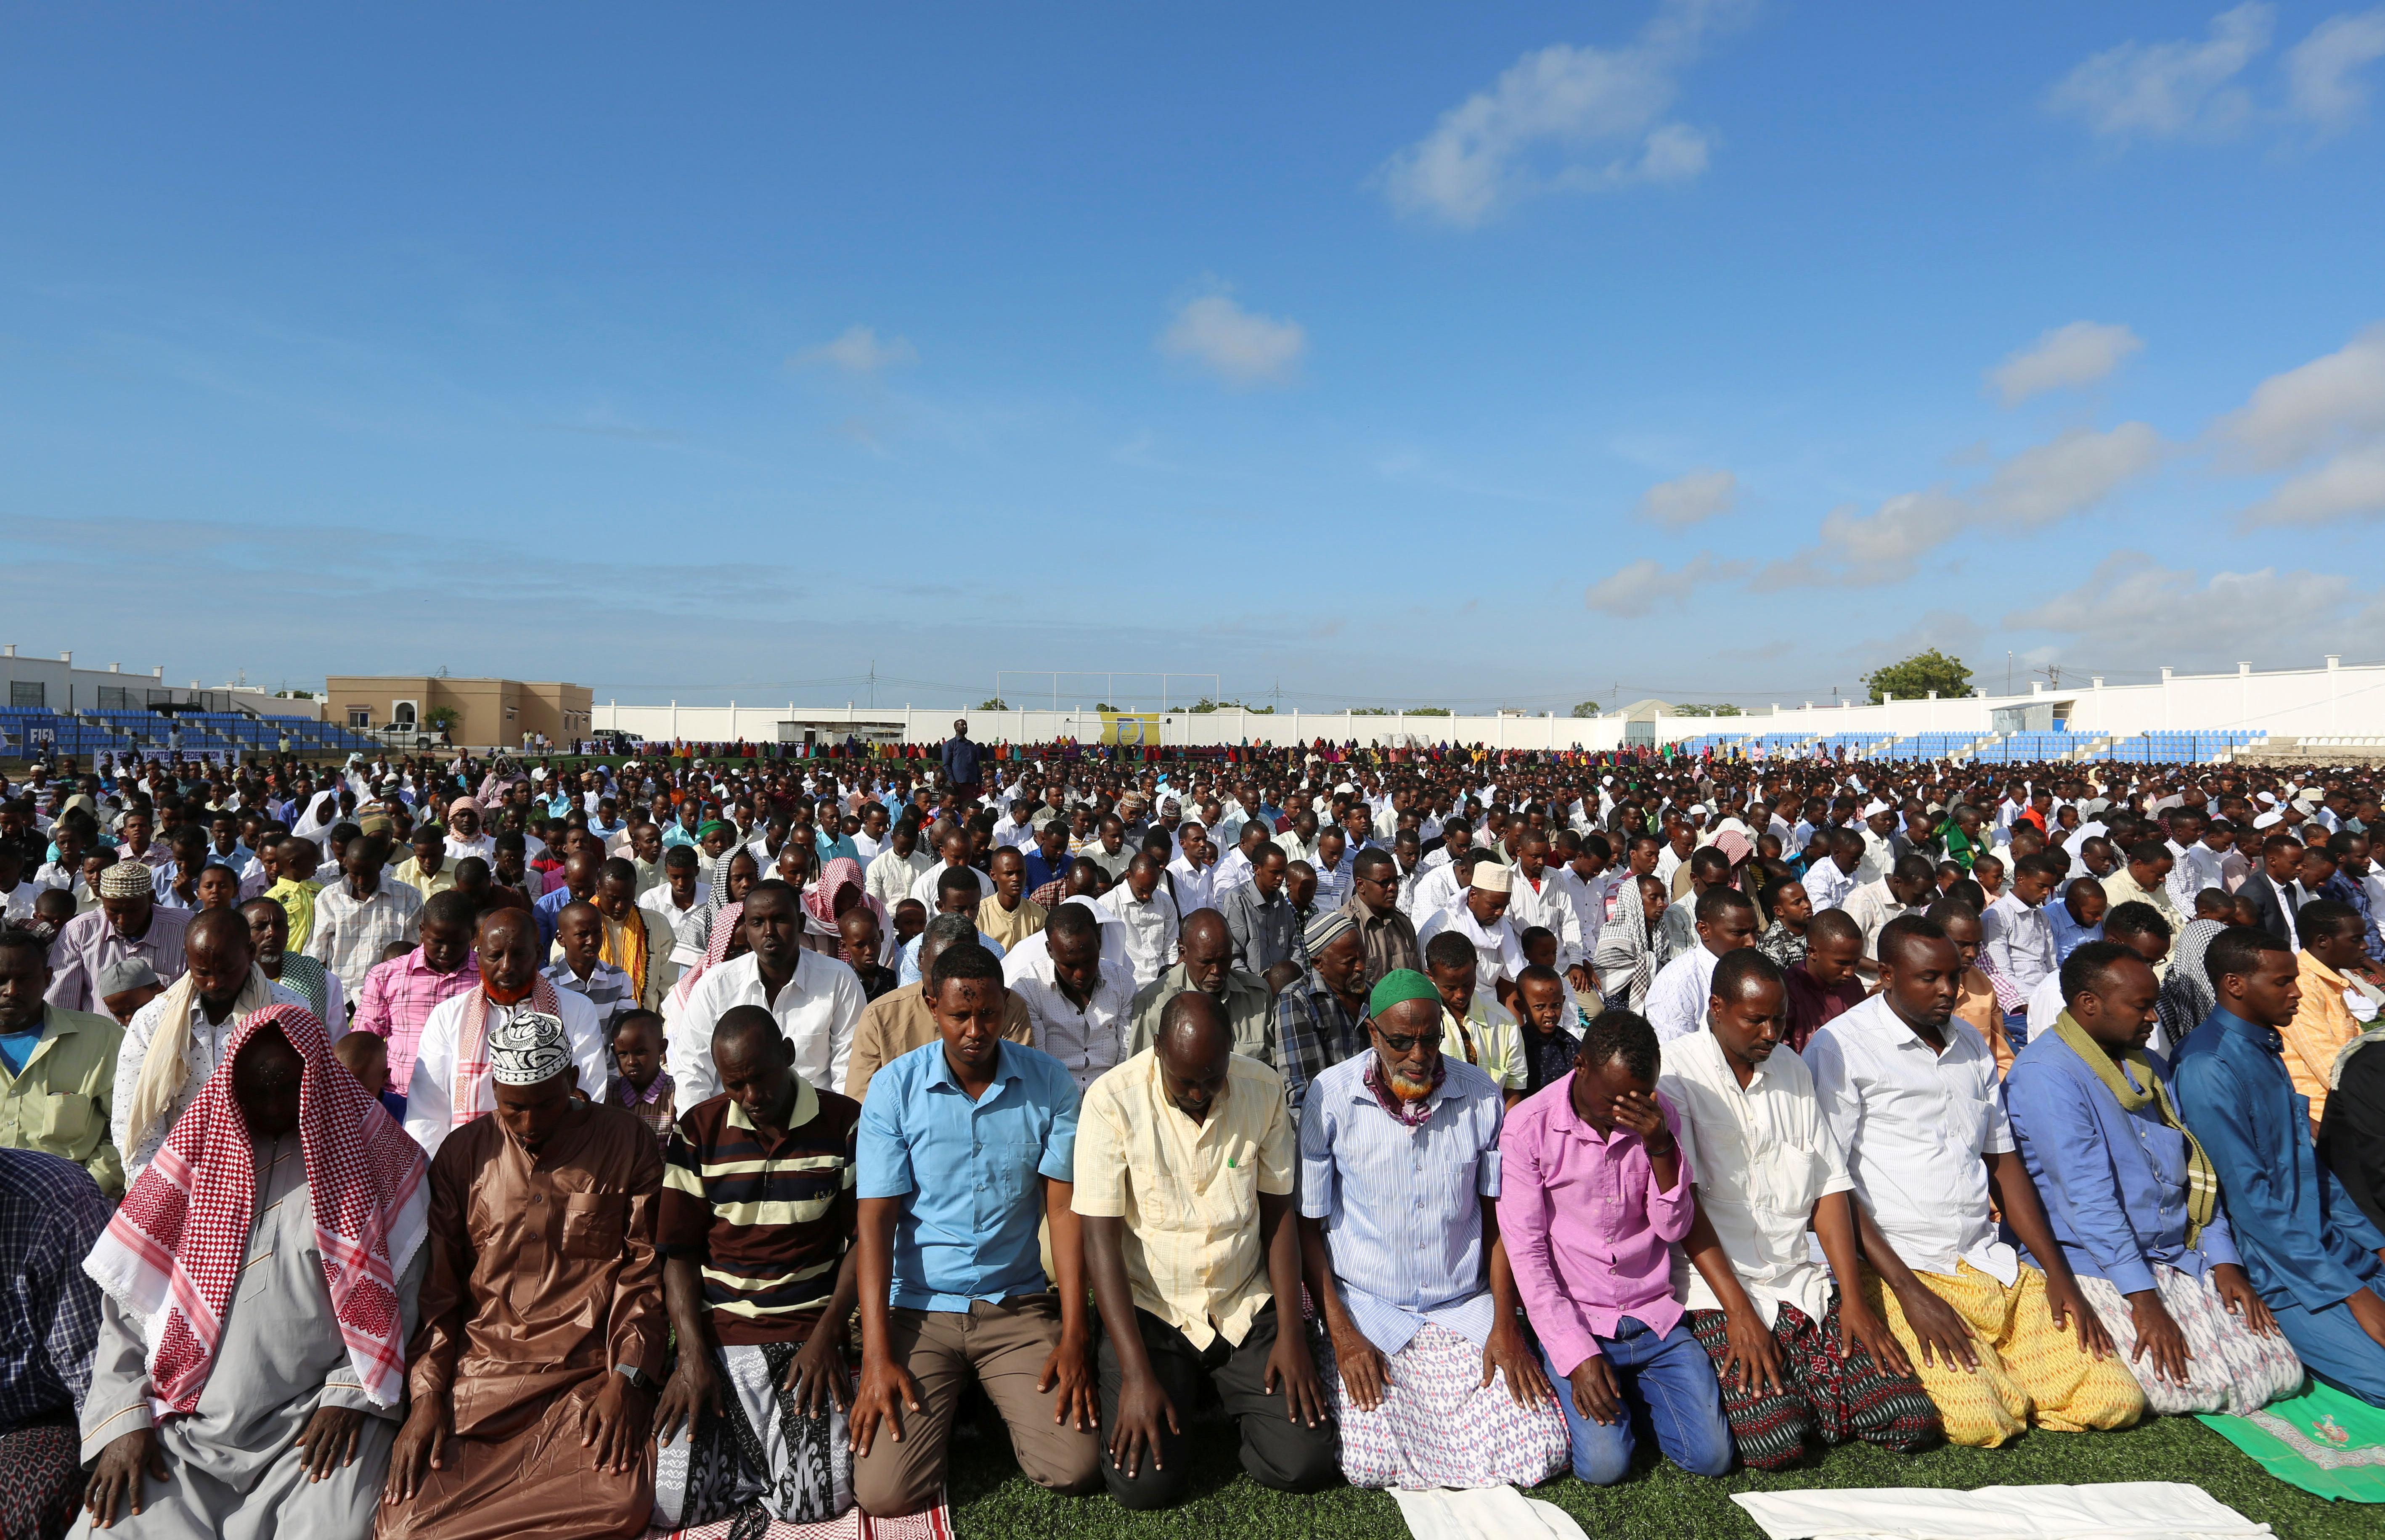 Muslims attend an Eid al-Adha mass prayer marking the end of the hajj pilgrimage in Somalia's capital Mogadishu, Sept. 12, 2016. Photo: REUTERS/Feisal Omar